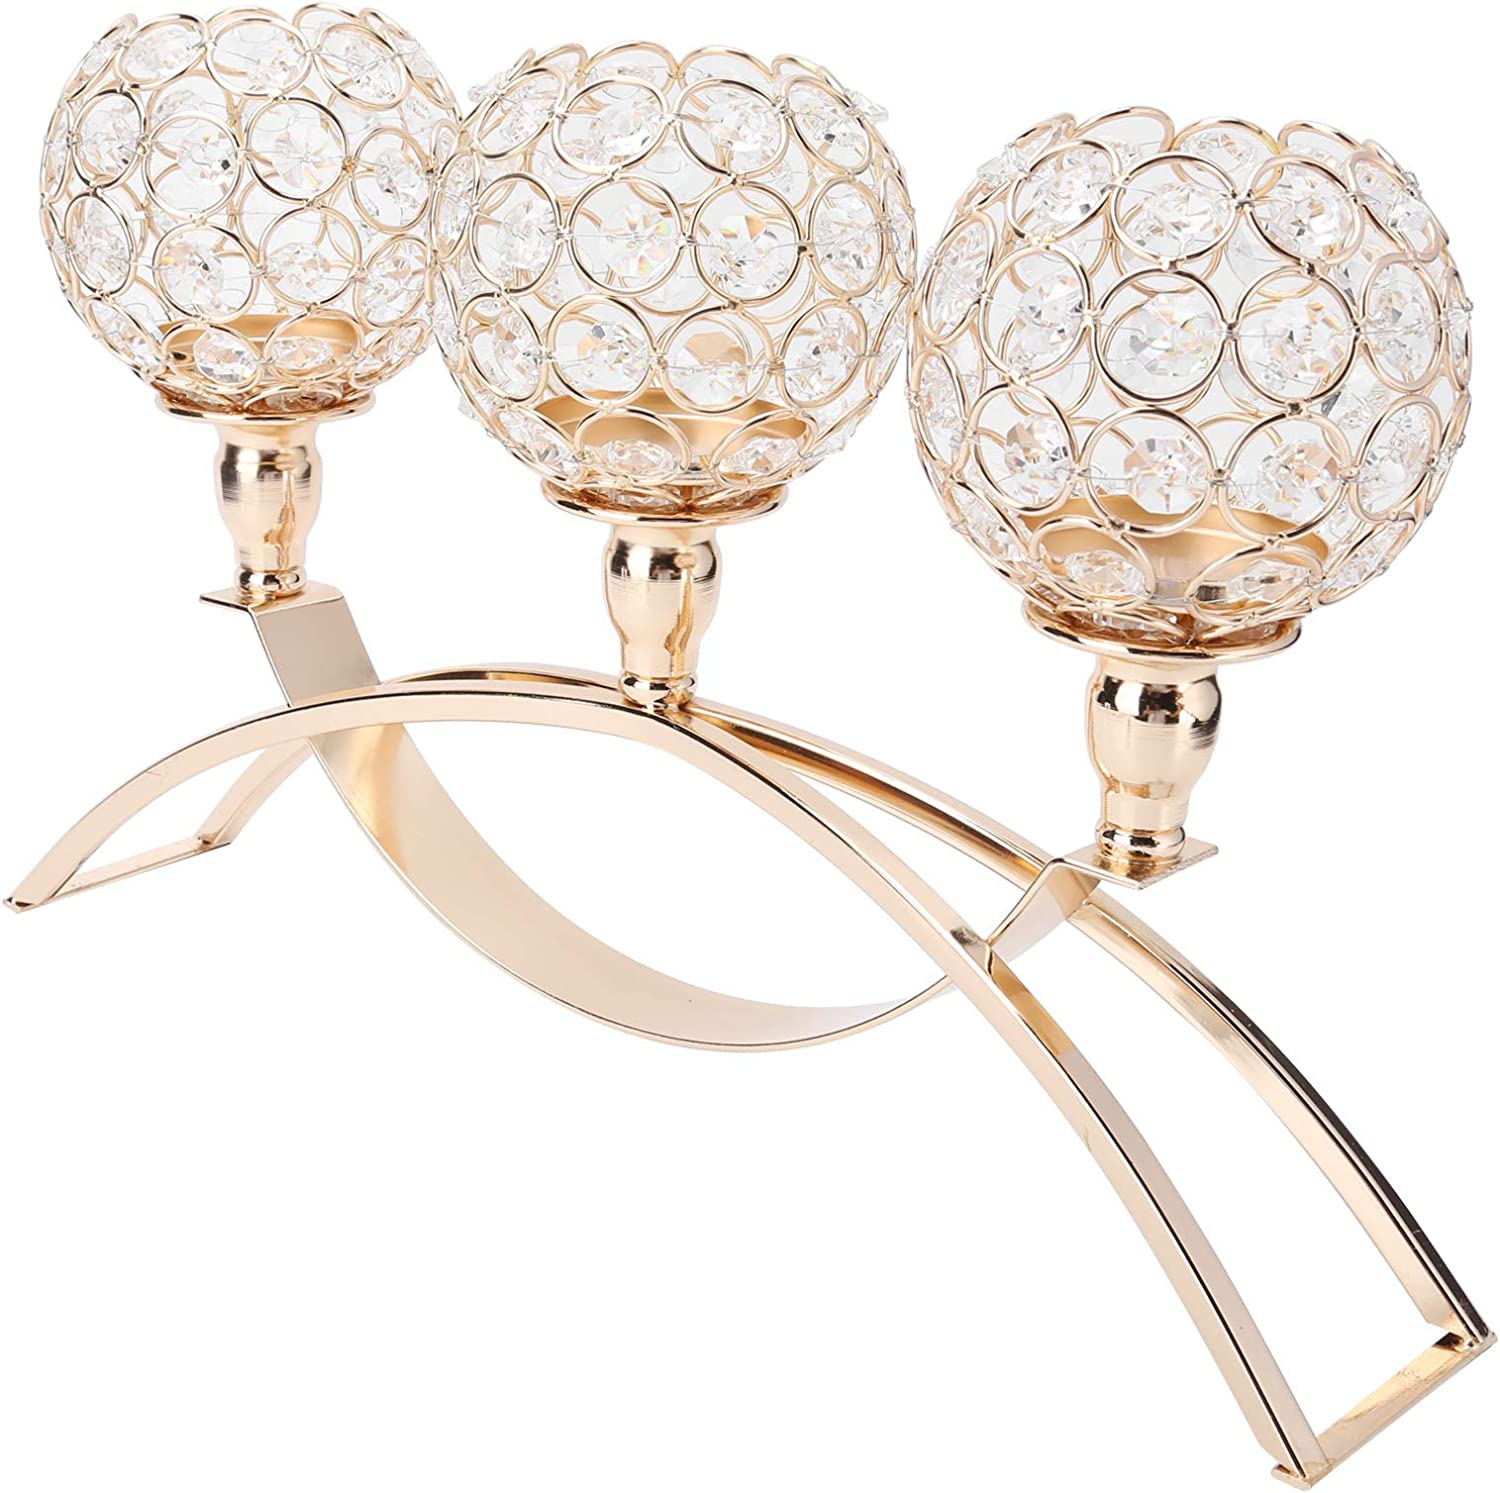 Crystal Under blast sales Candle Holders - Golden Max 80% OFF Candlestick Ornaments Romantic